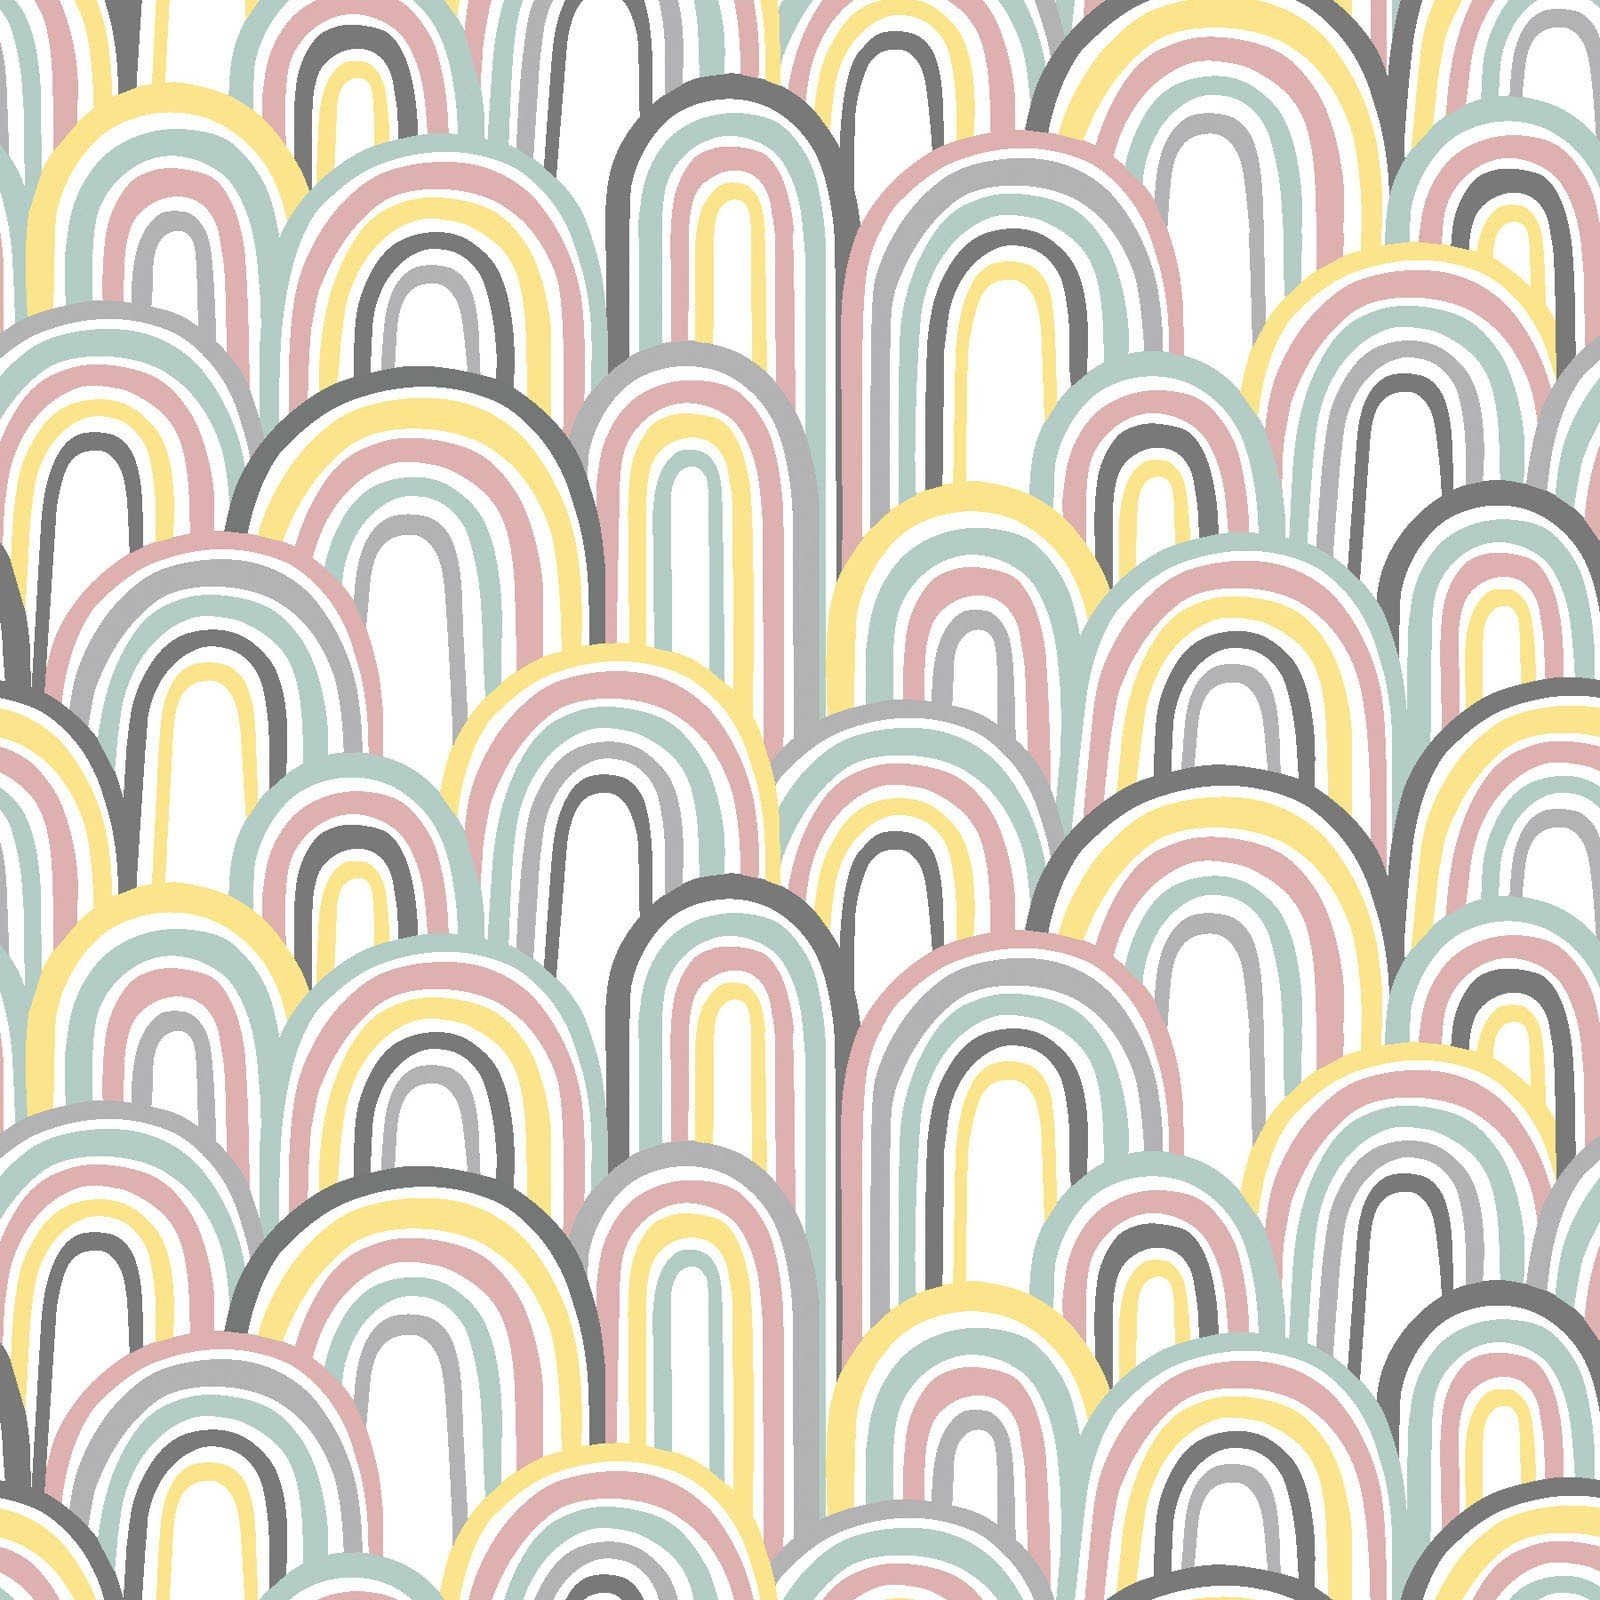 3 Wishes Small & Mighty FLANNEL by Angela Nickeas 17156 WHT Rainbows $6.99/yd